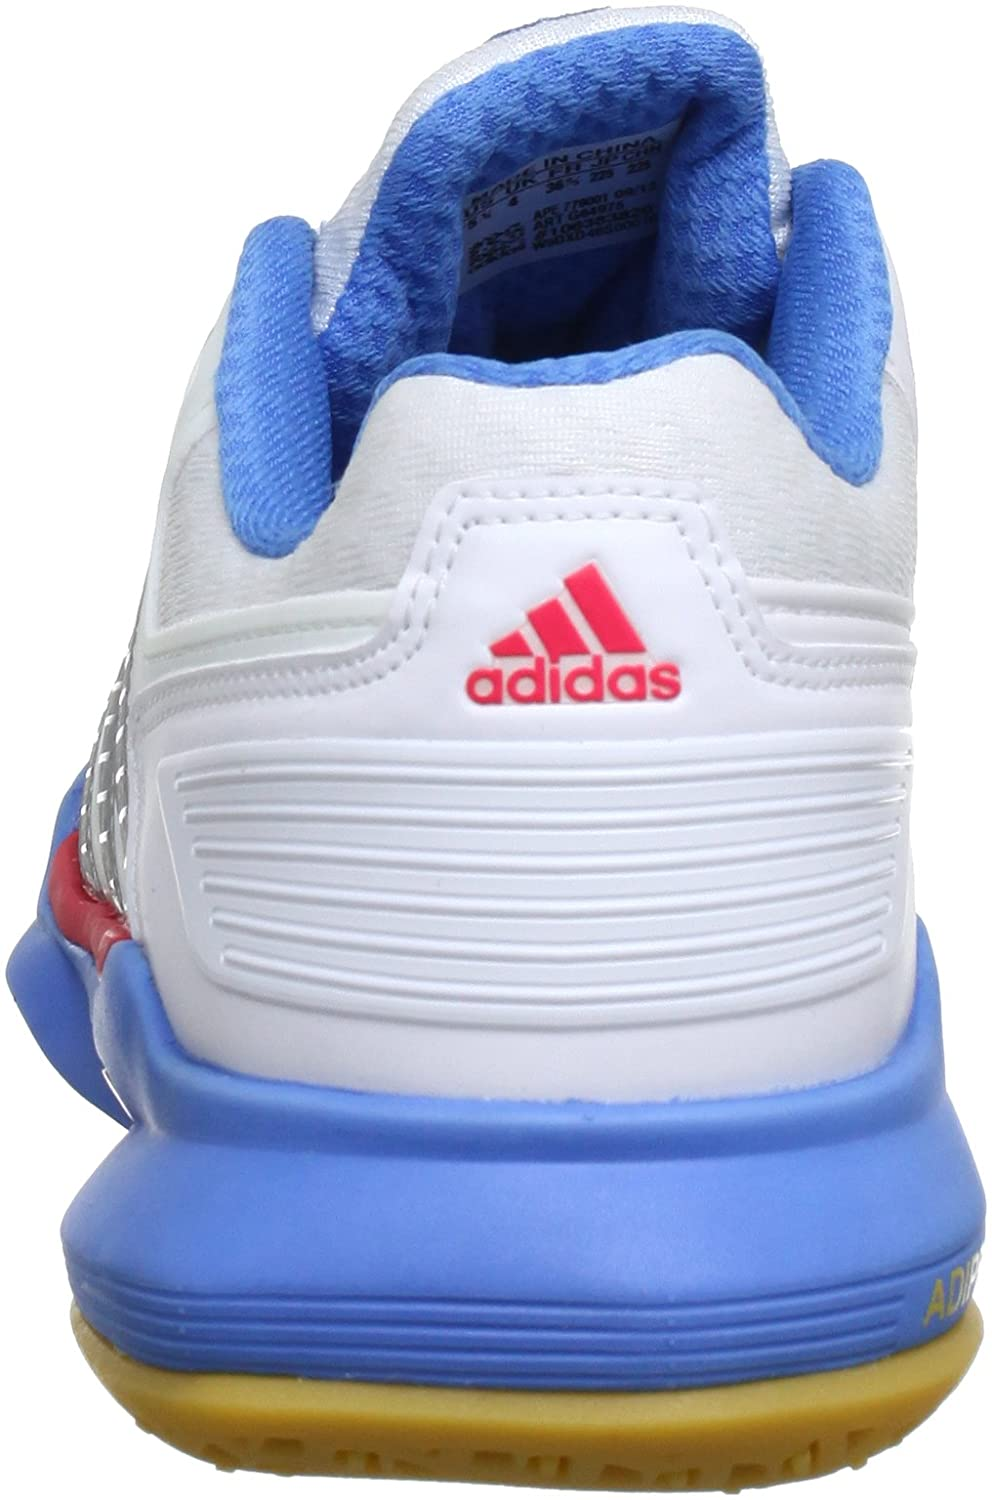 wholesale dealer 6599e 4c1bb adidas adipower Stabil 10.0 W G64975, Damen Handballschuhe, Weiß (Running  White Ftw  Metallic Silver  Joy Blue S13), EU 48 (UK 12.5) Amazon.de  Schuhe  ...